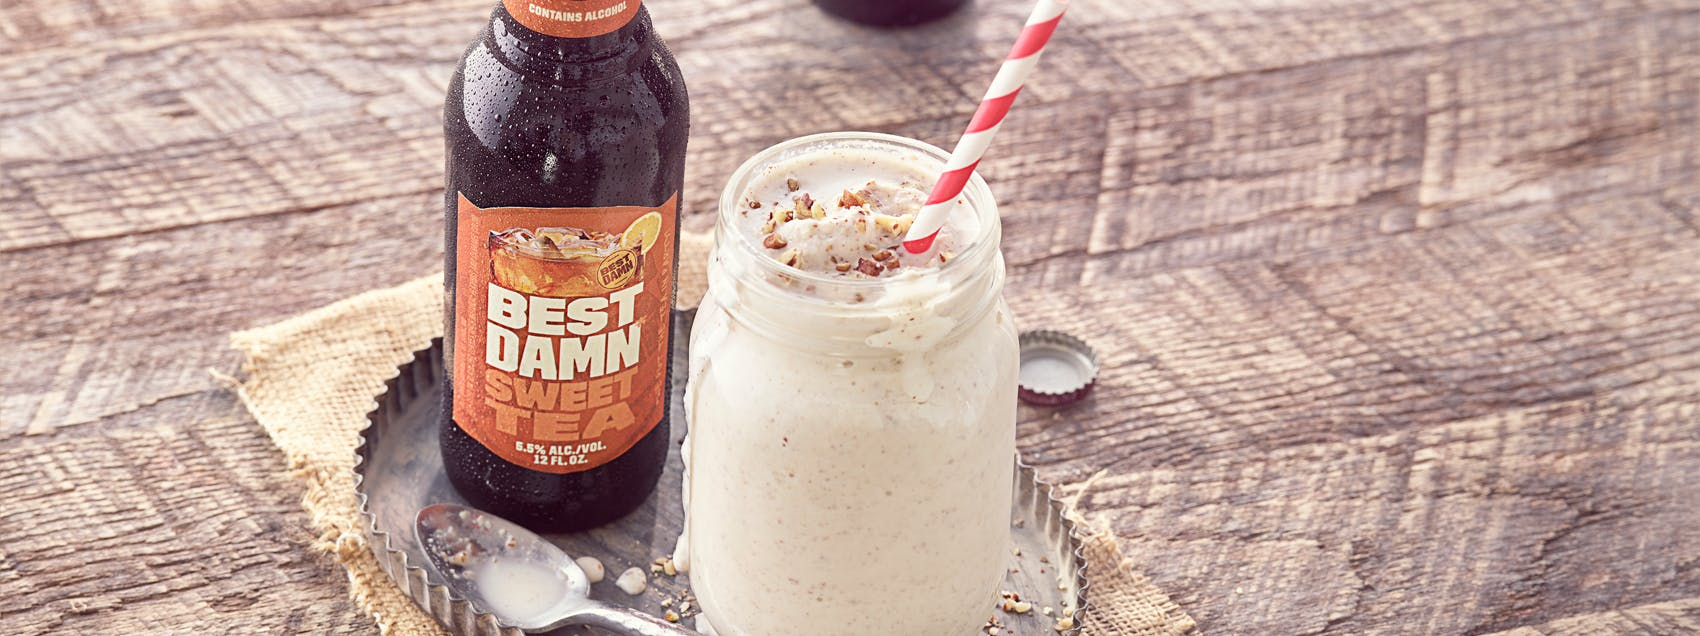 Best Damn Spirited Butter Pecan Shake